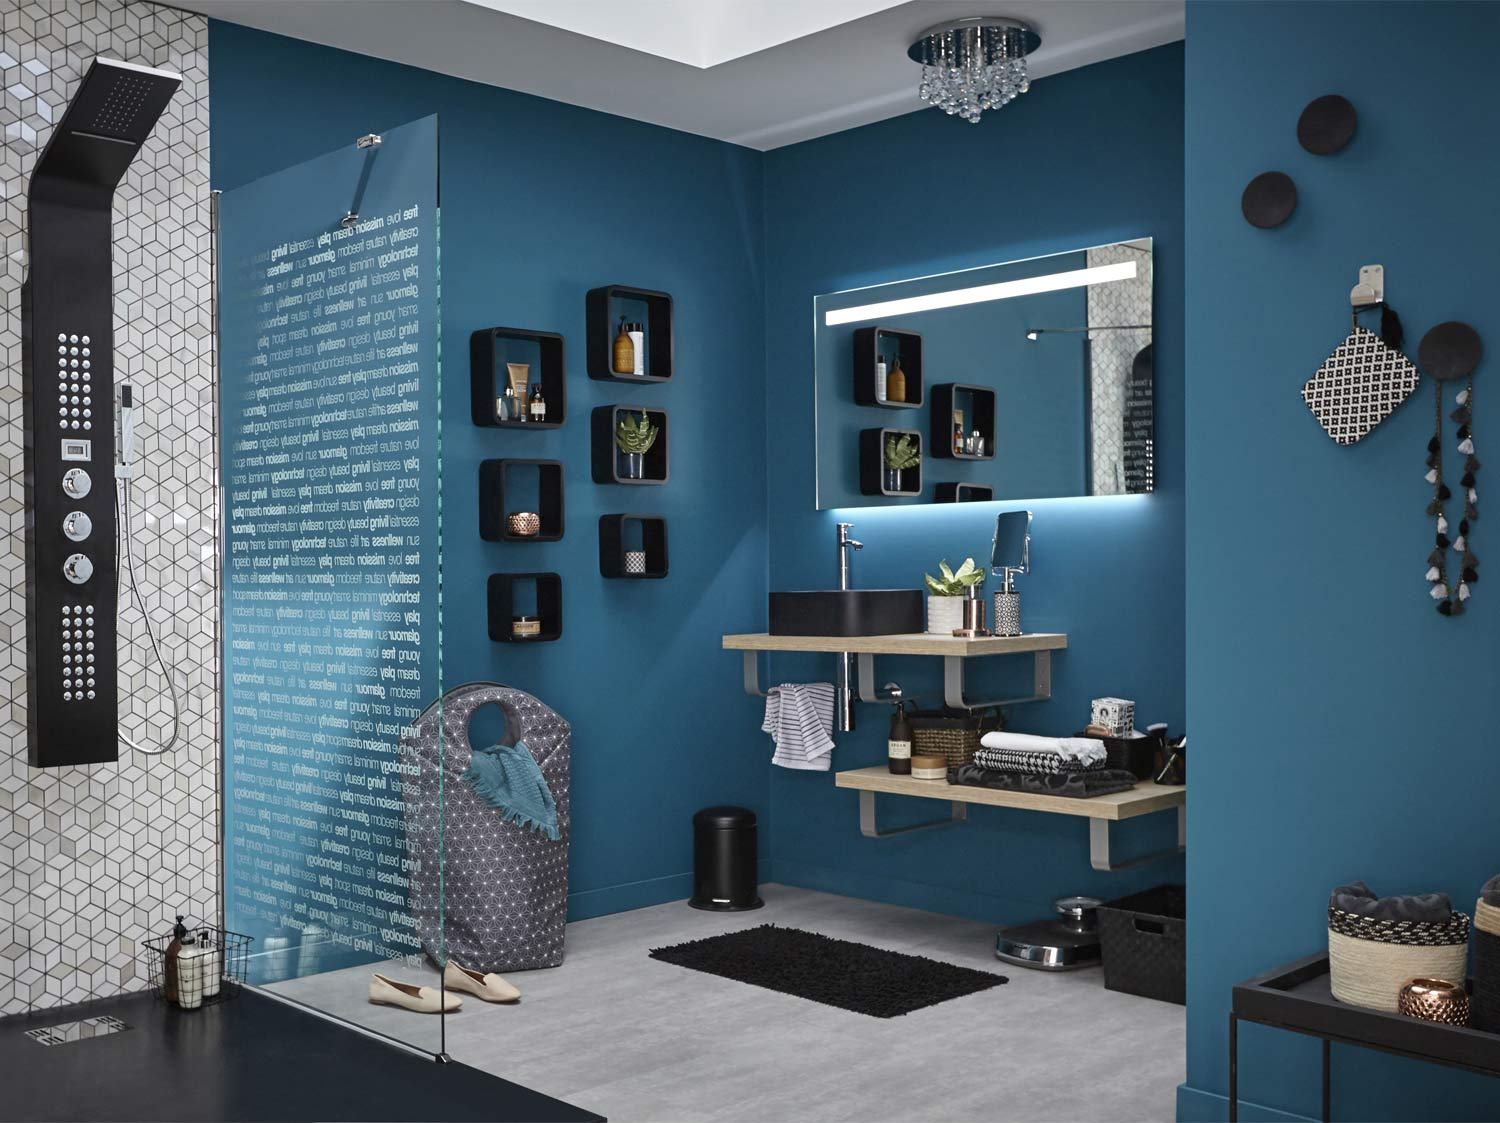 salle de bain 3m2 amenagement petite salle de bain sans. Black Bedroom Furniture Sets. Home Design Ideas